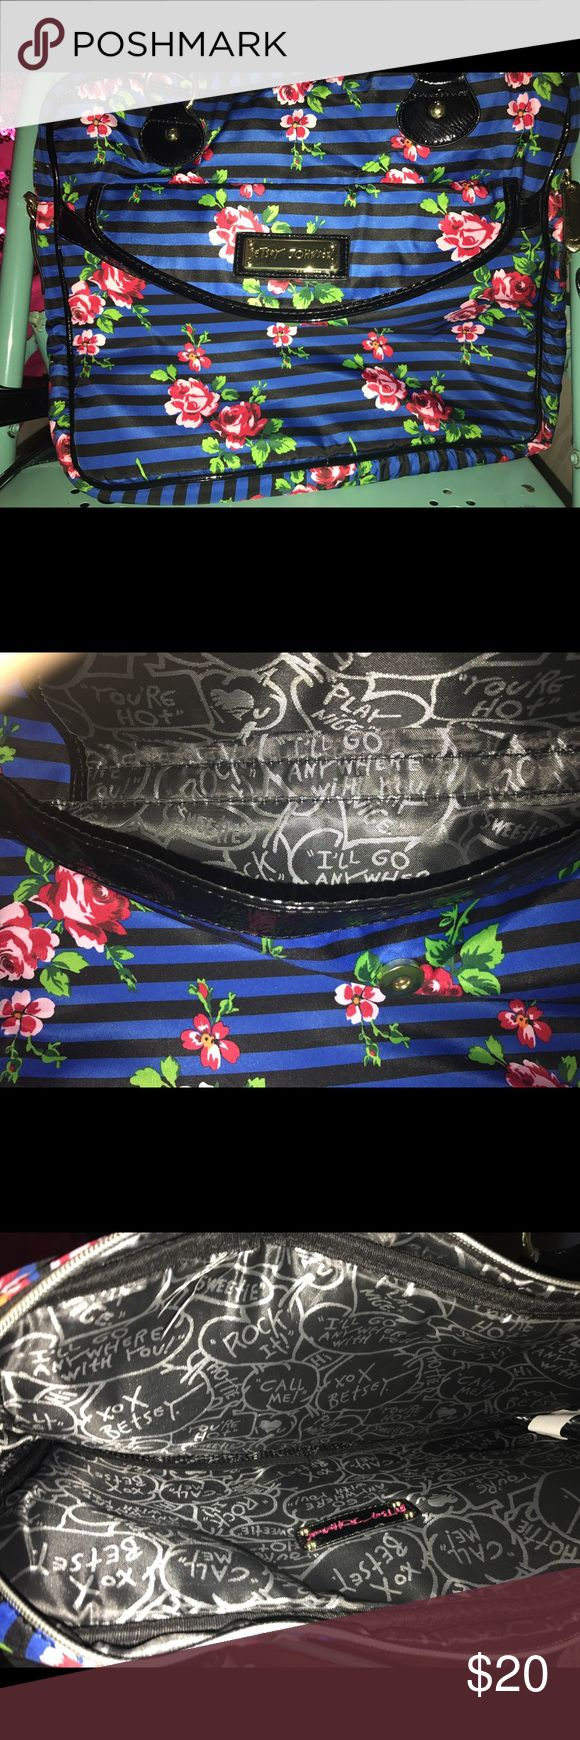 Laptop Bag This is a large laptop bag with blue and black stripes and a pink and red floral print it also has gold hardware and faux black paten as the handles and a cross body chain Betsey Johnson Bags Laptop Bags